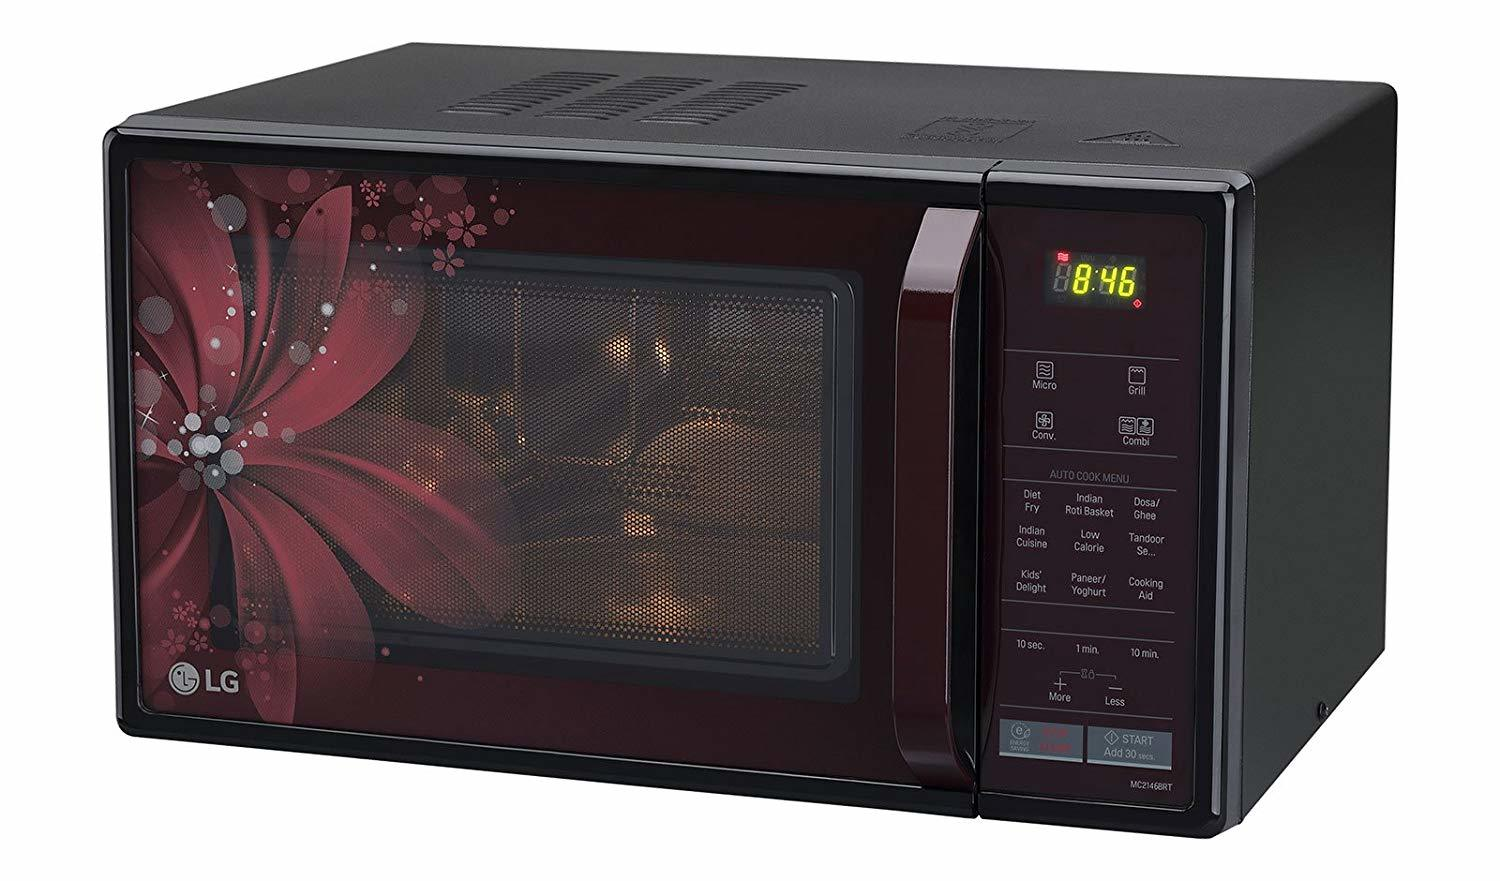 LG 21 L Convection Microwave Oven (MC2146BRT, Black)